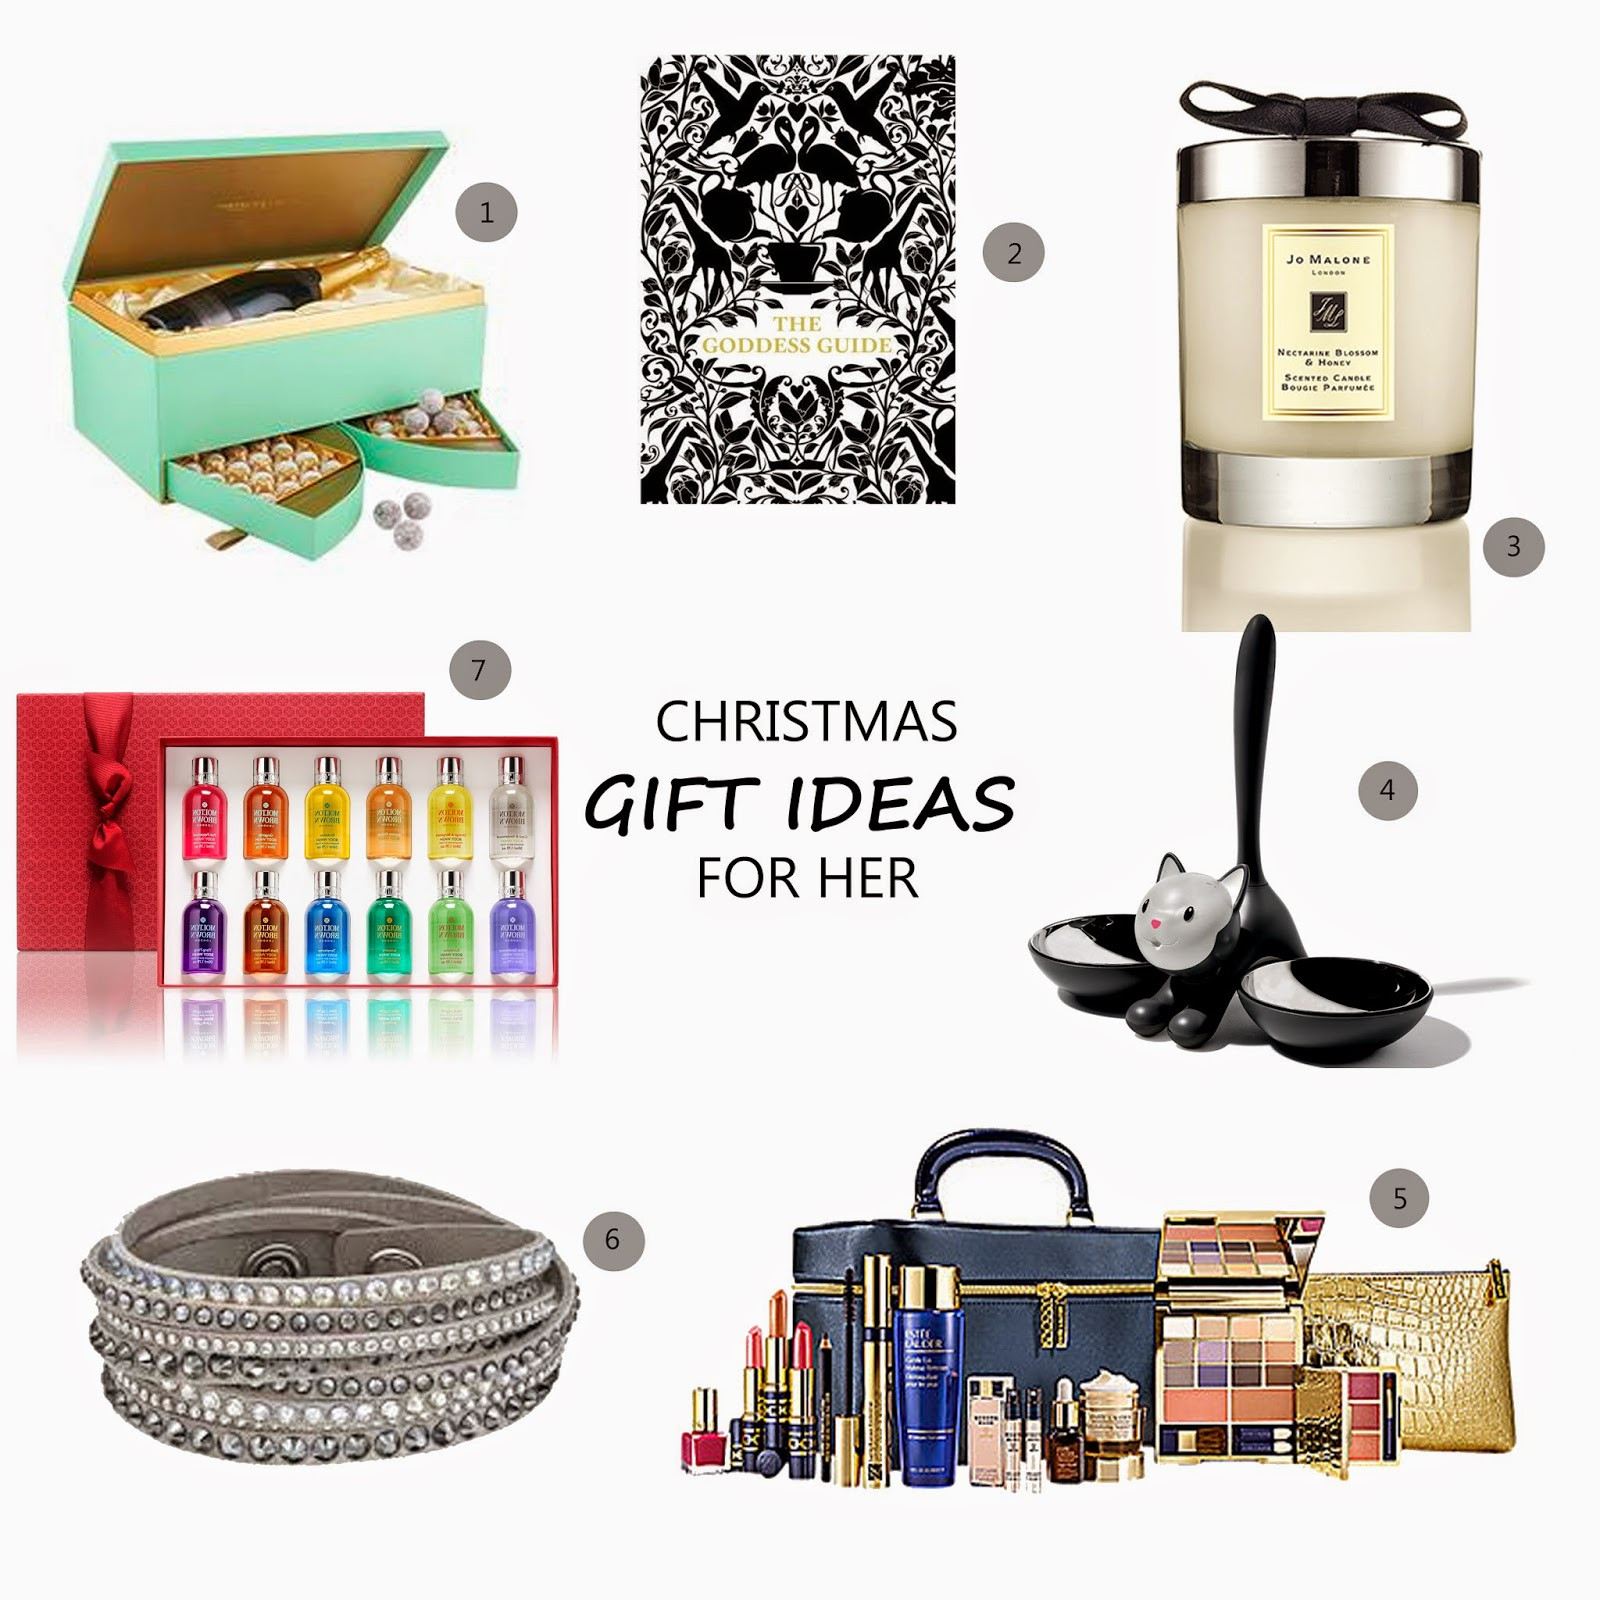 Best ideas about Holiday Gift Ideas For Her . Save or Pin 7 Christmas Gift Ideas for Her Loved By Laura Now.